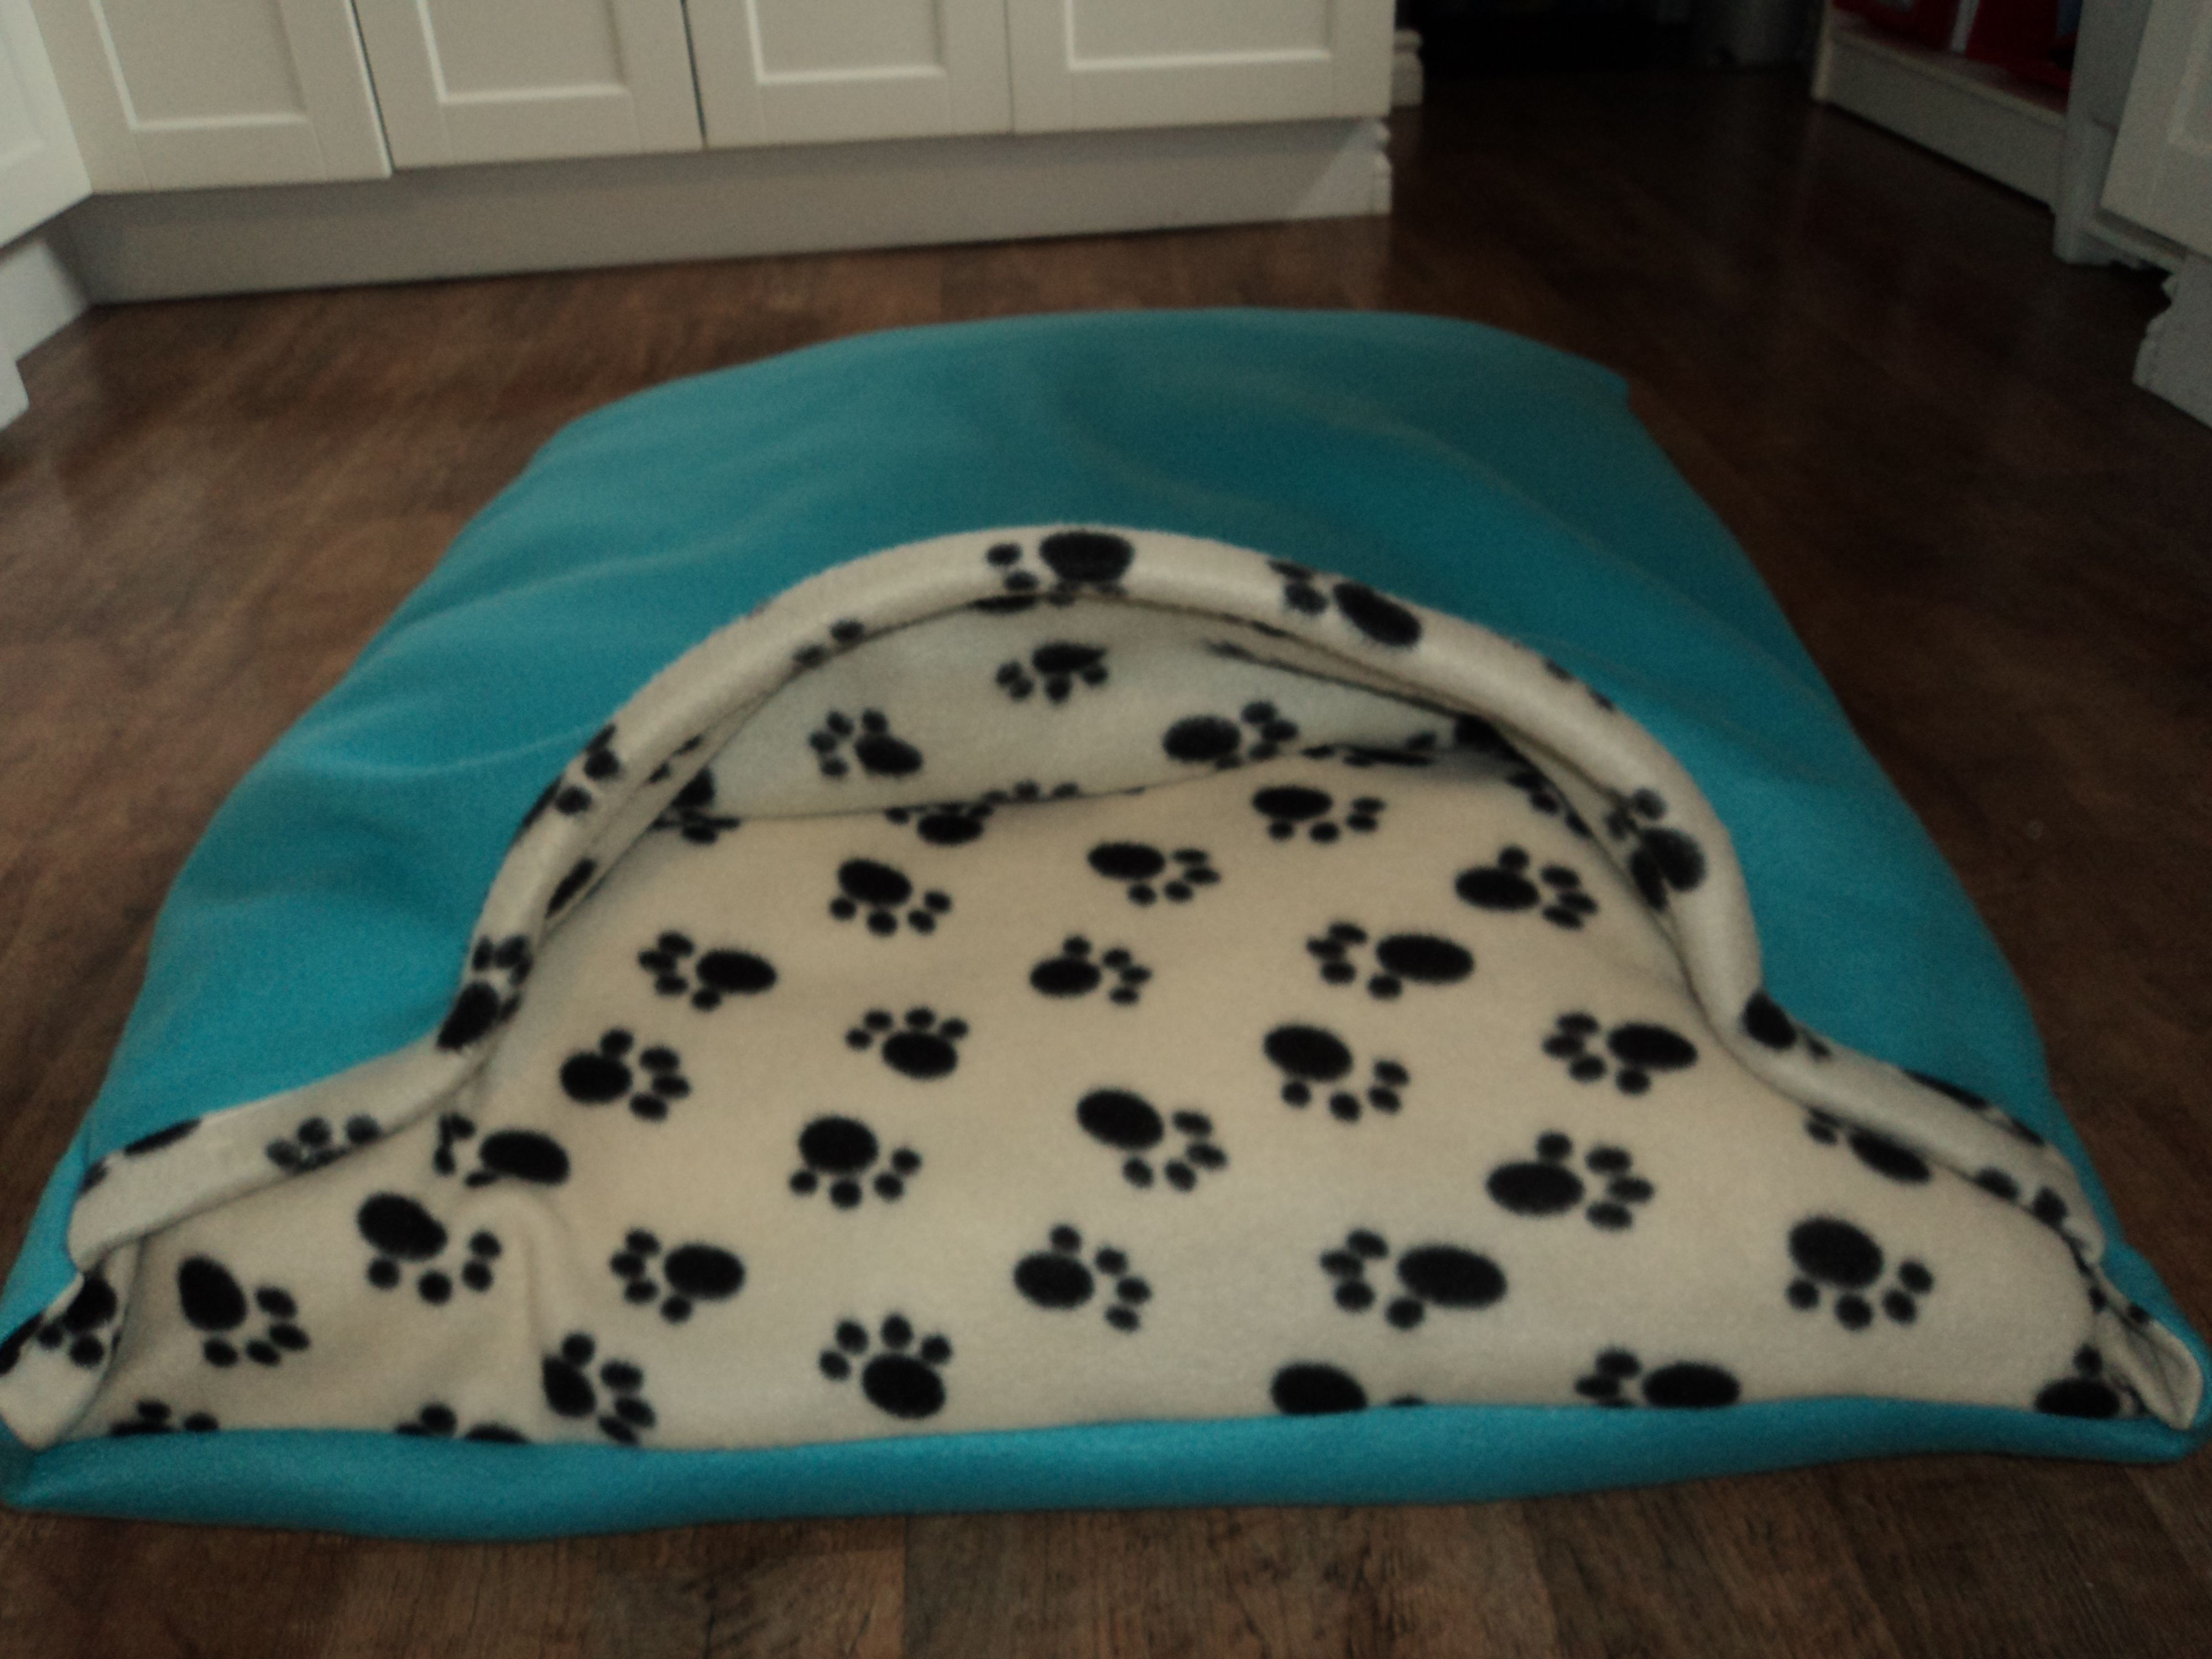 Diy Dog Bed Homemade Our Little Dogs Love It Dog Sleeping Bag Dog Beds For Small Dogs Snuggle Dog Bed